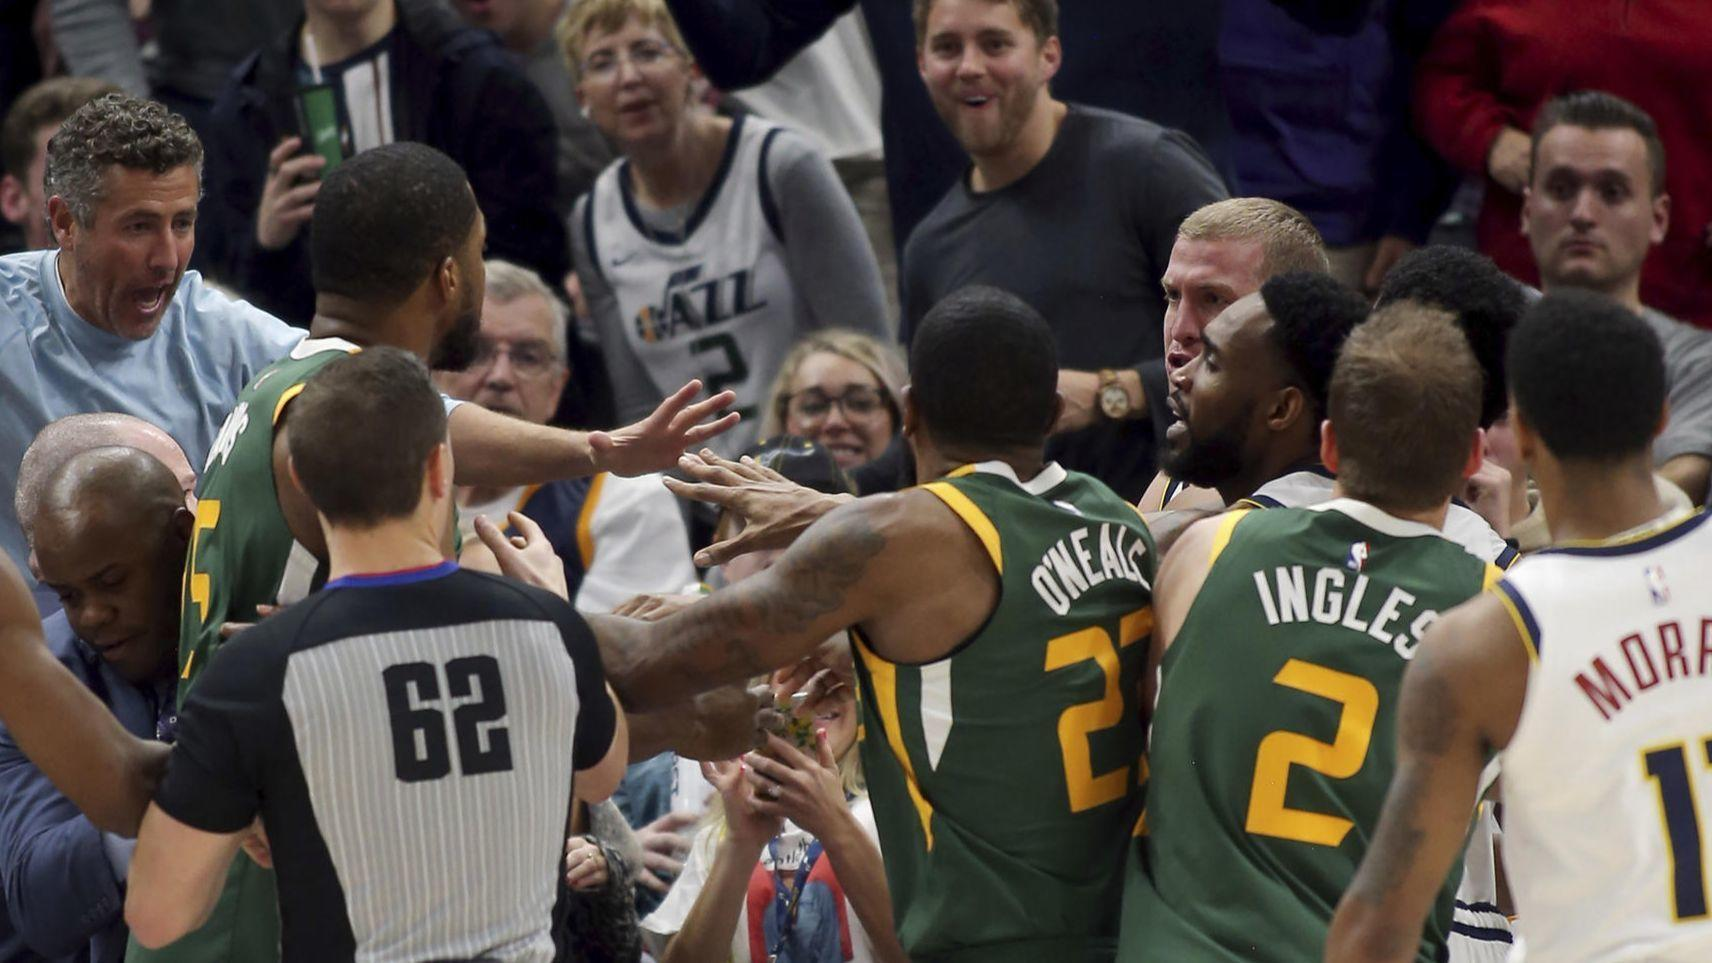 c4a63f7f2537 NBA  Nuggets  Nikola Jokic suspended one game for leaving bench during  altercation